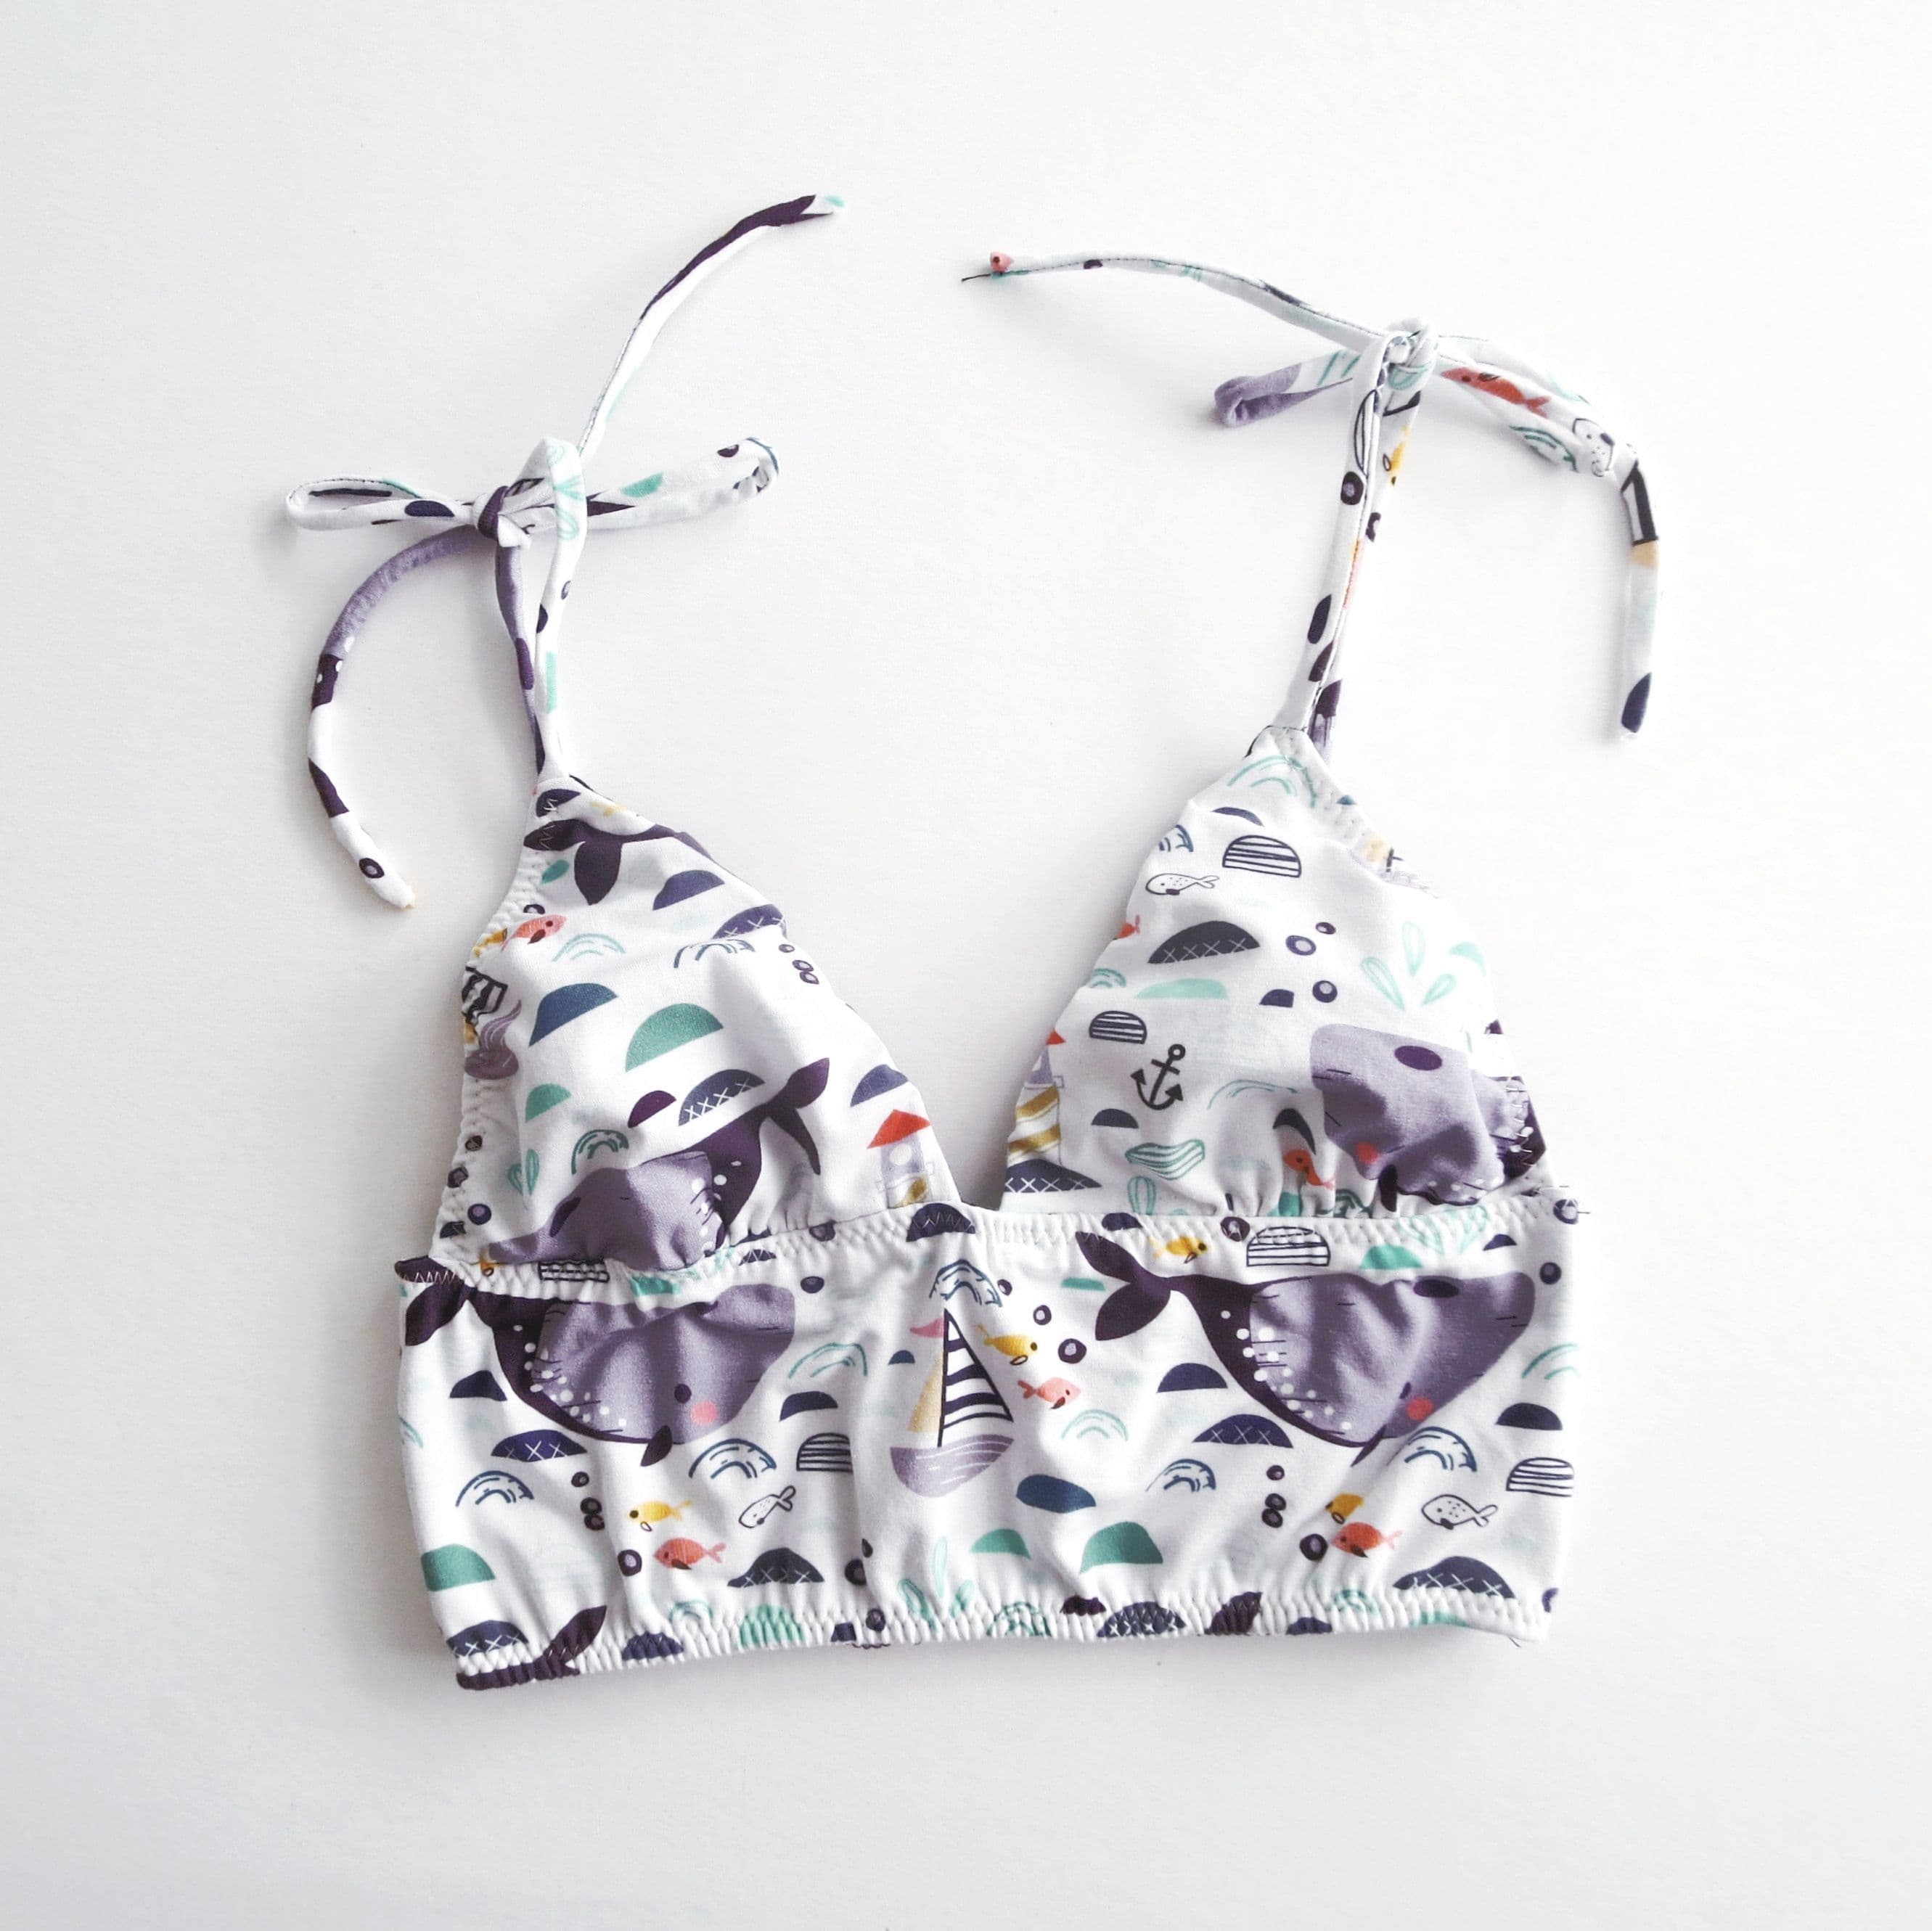 East Coast Bralette - EmMeMa | Buy cute handmade bralette